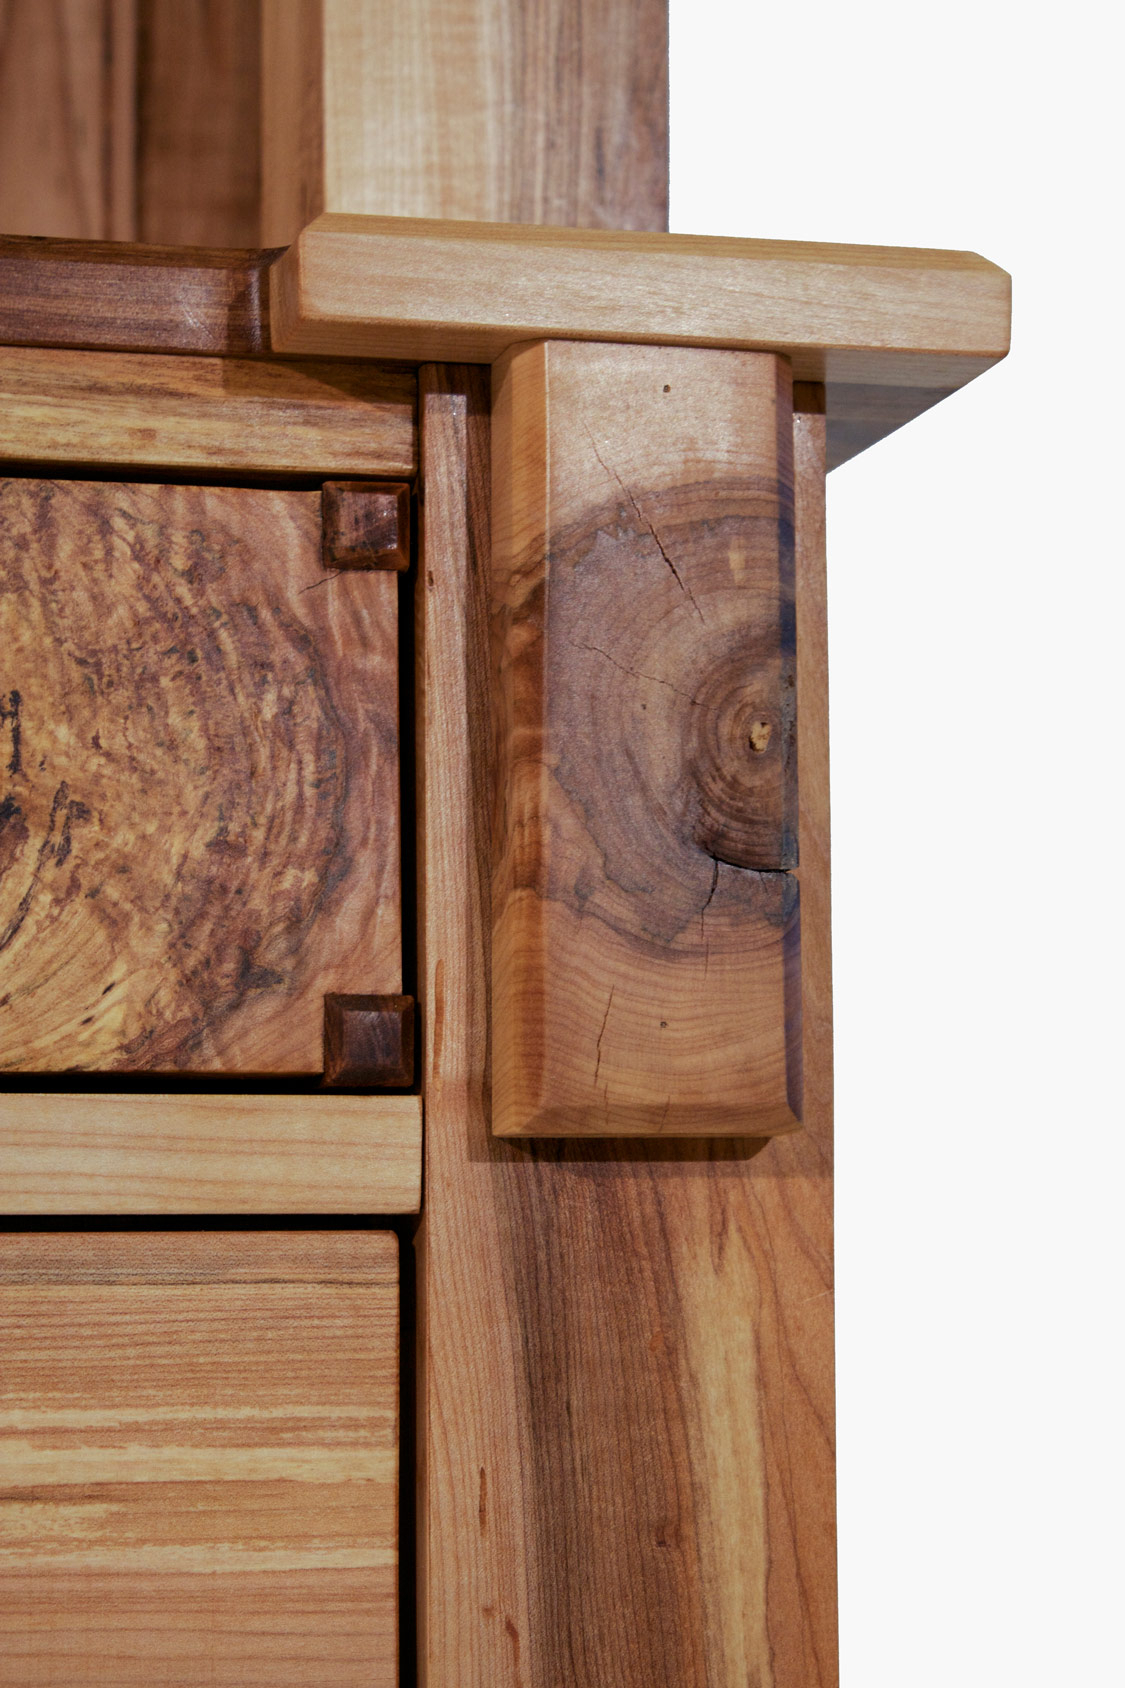 Spalted Maple Tv Cabinet | Live Edge Creations With Regard To Maple Tv Cabinets (View 10 of 15)